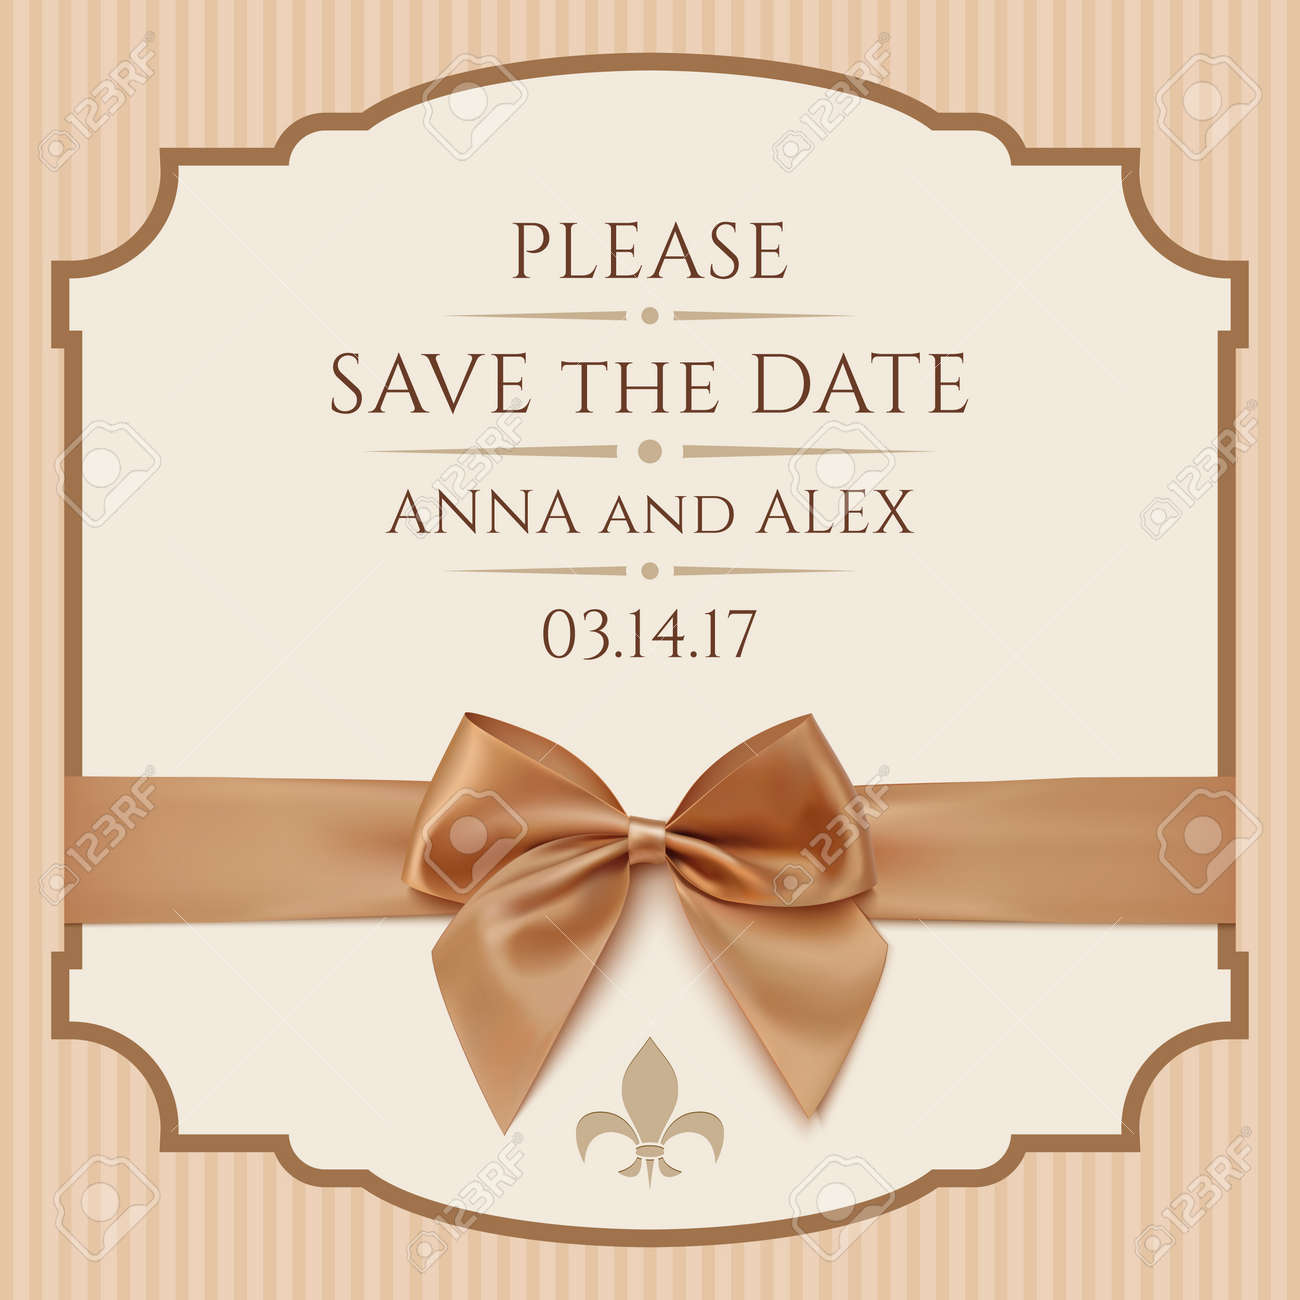 save the date wedding invitation card vintage greeting card